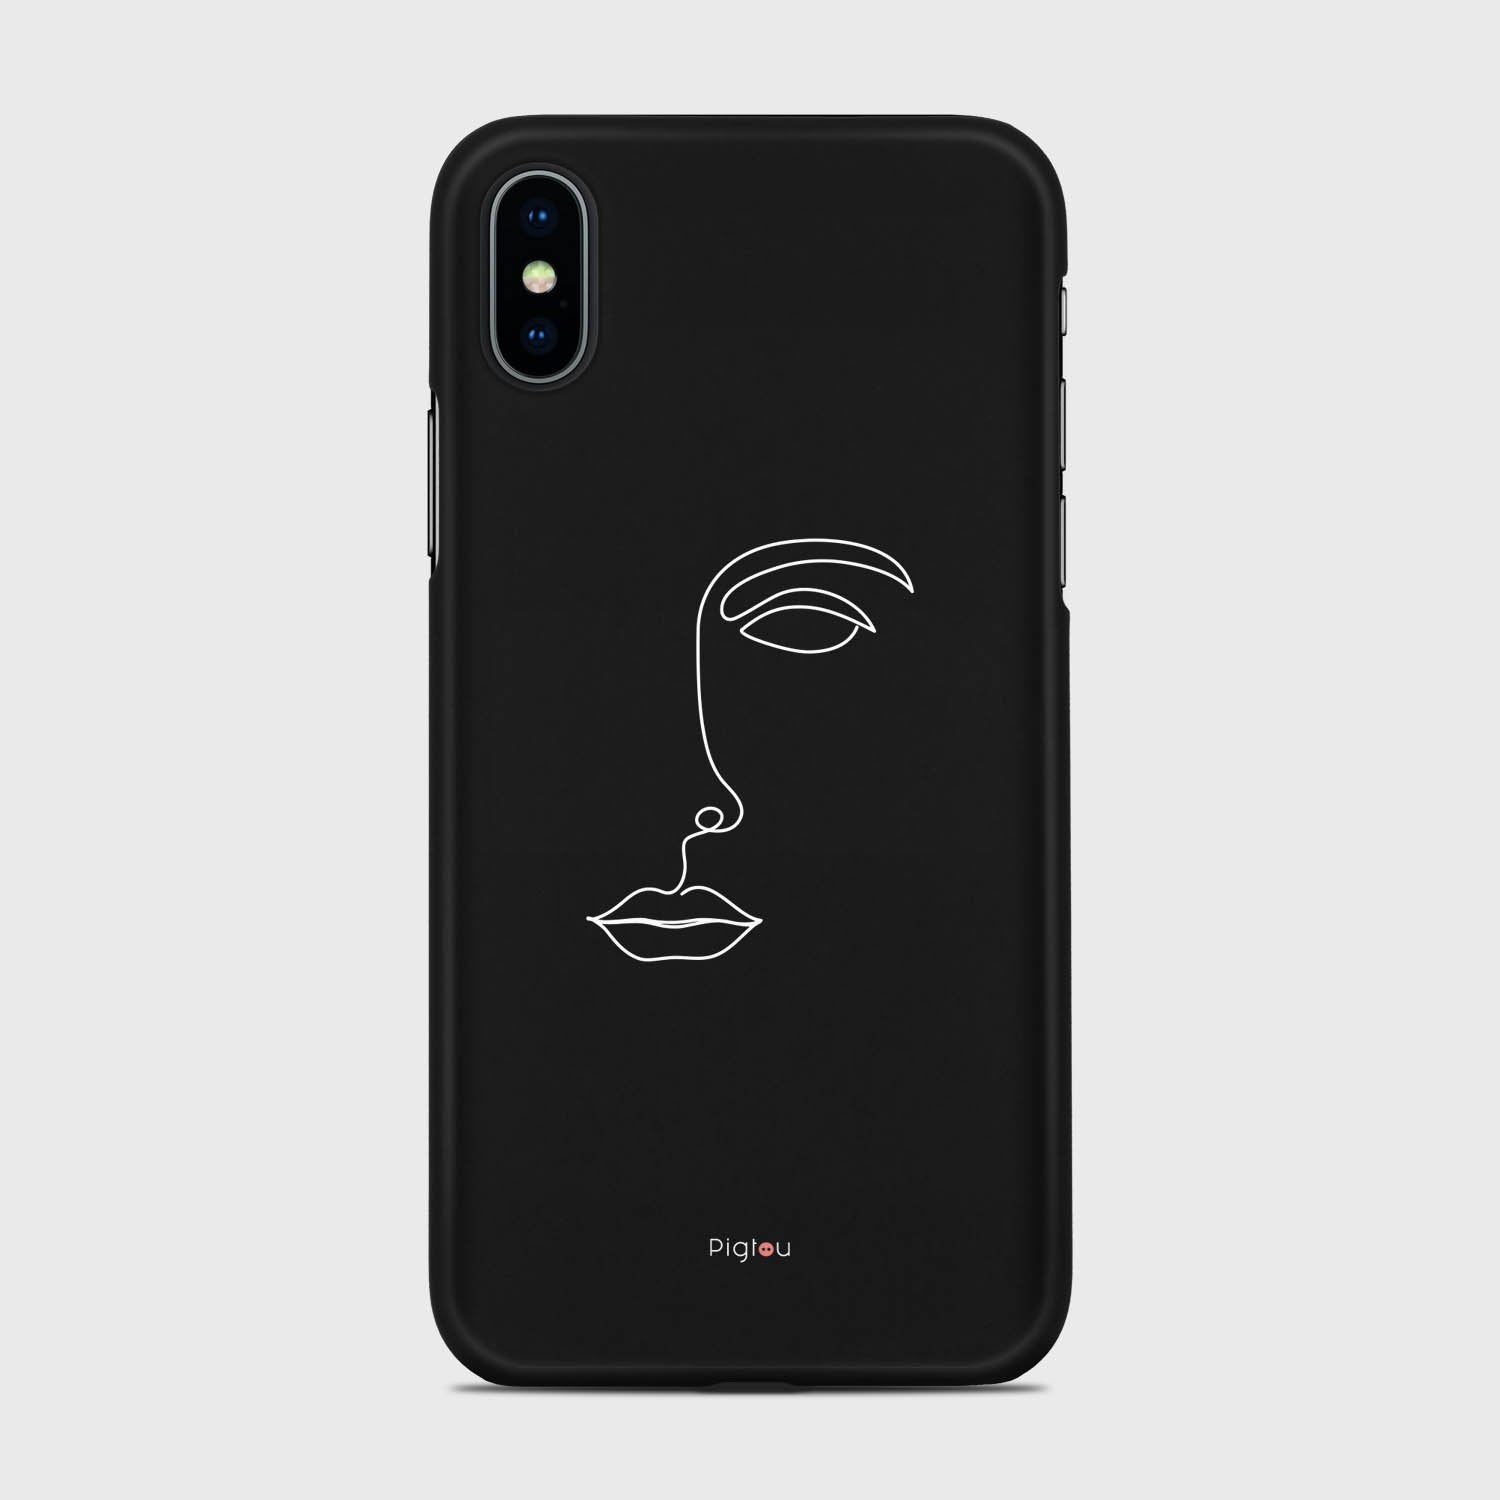 SILHOUETTE FACE iPhone 12 Max cases | Pigtou